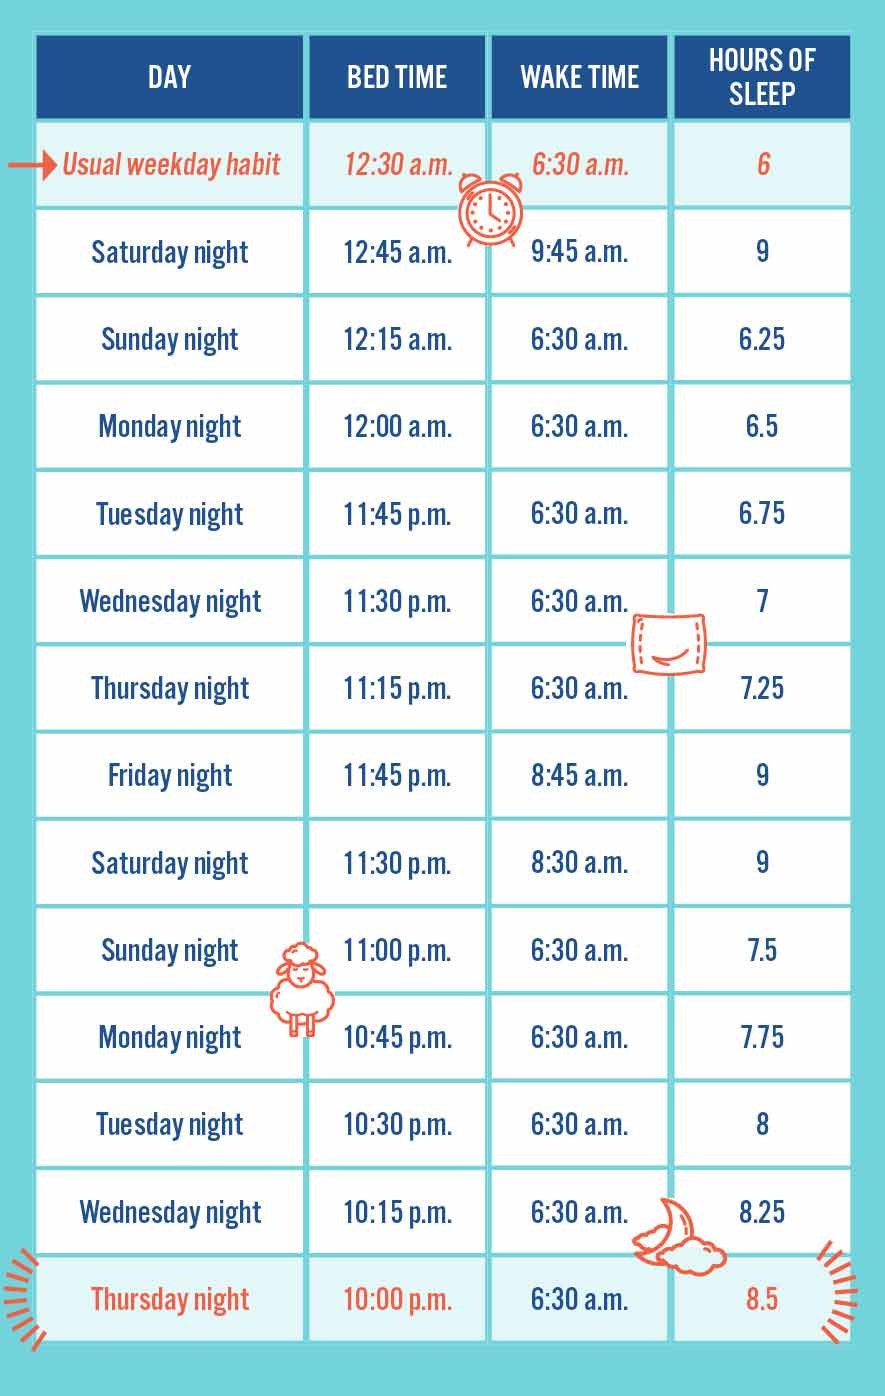 Sleep adjustment chart